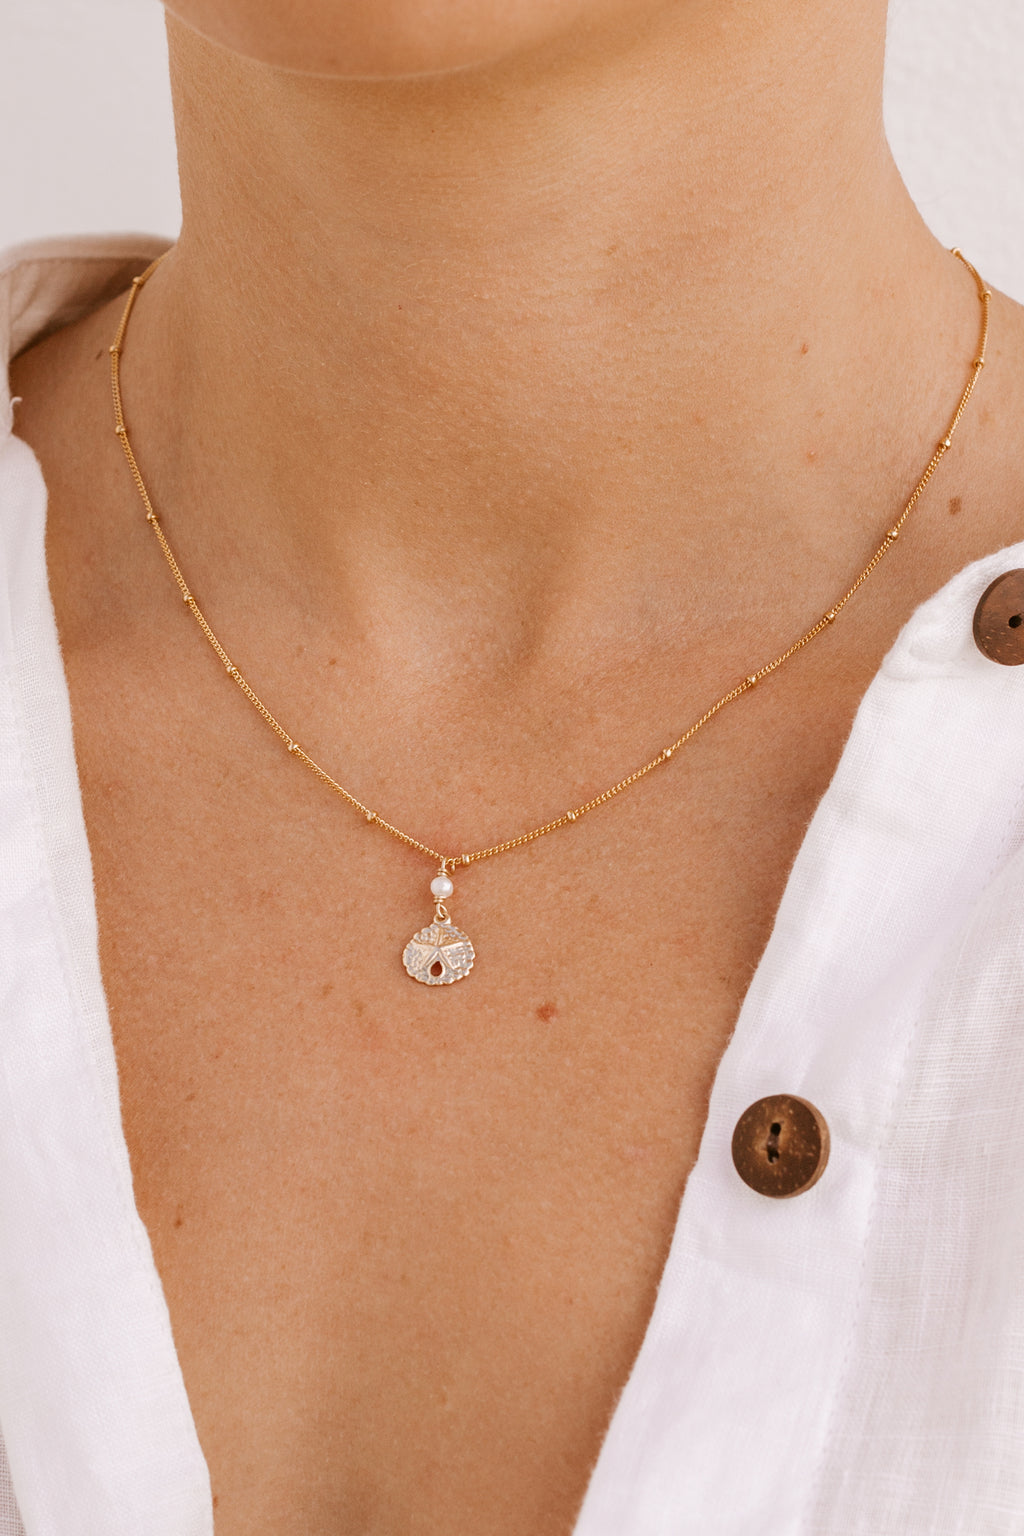 Sand Dollar Pearl Satellite Necklace  - Gold Fill